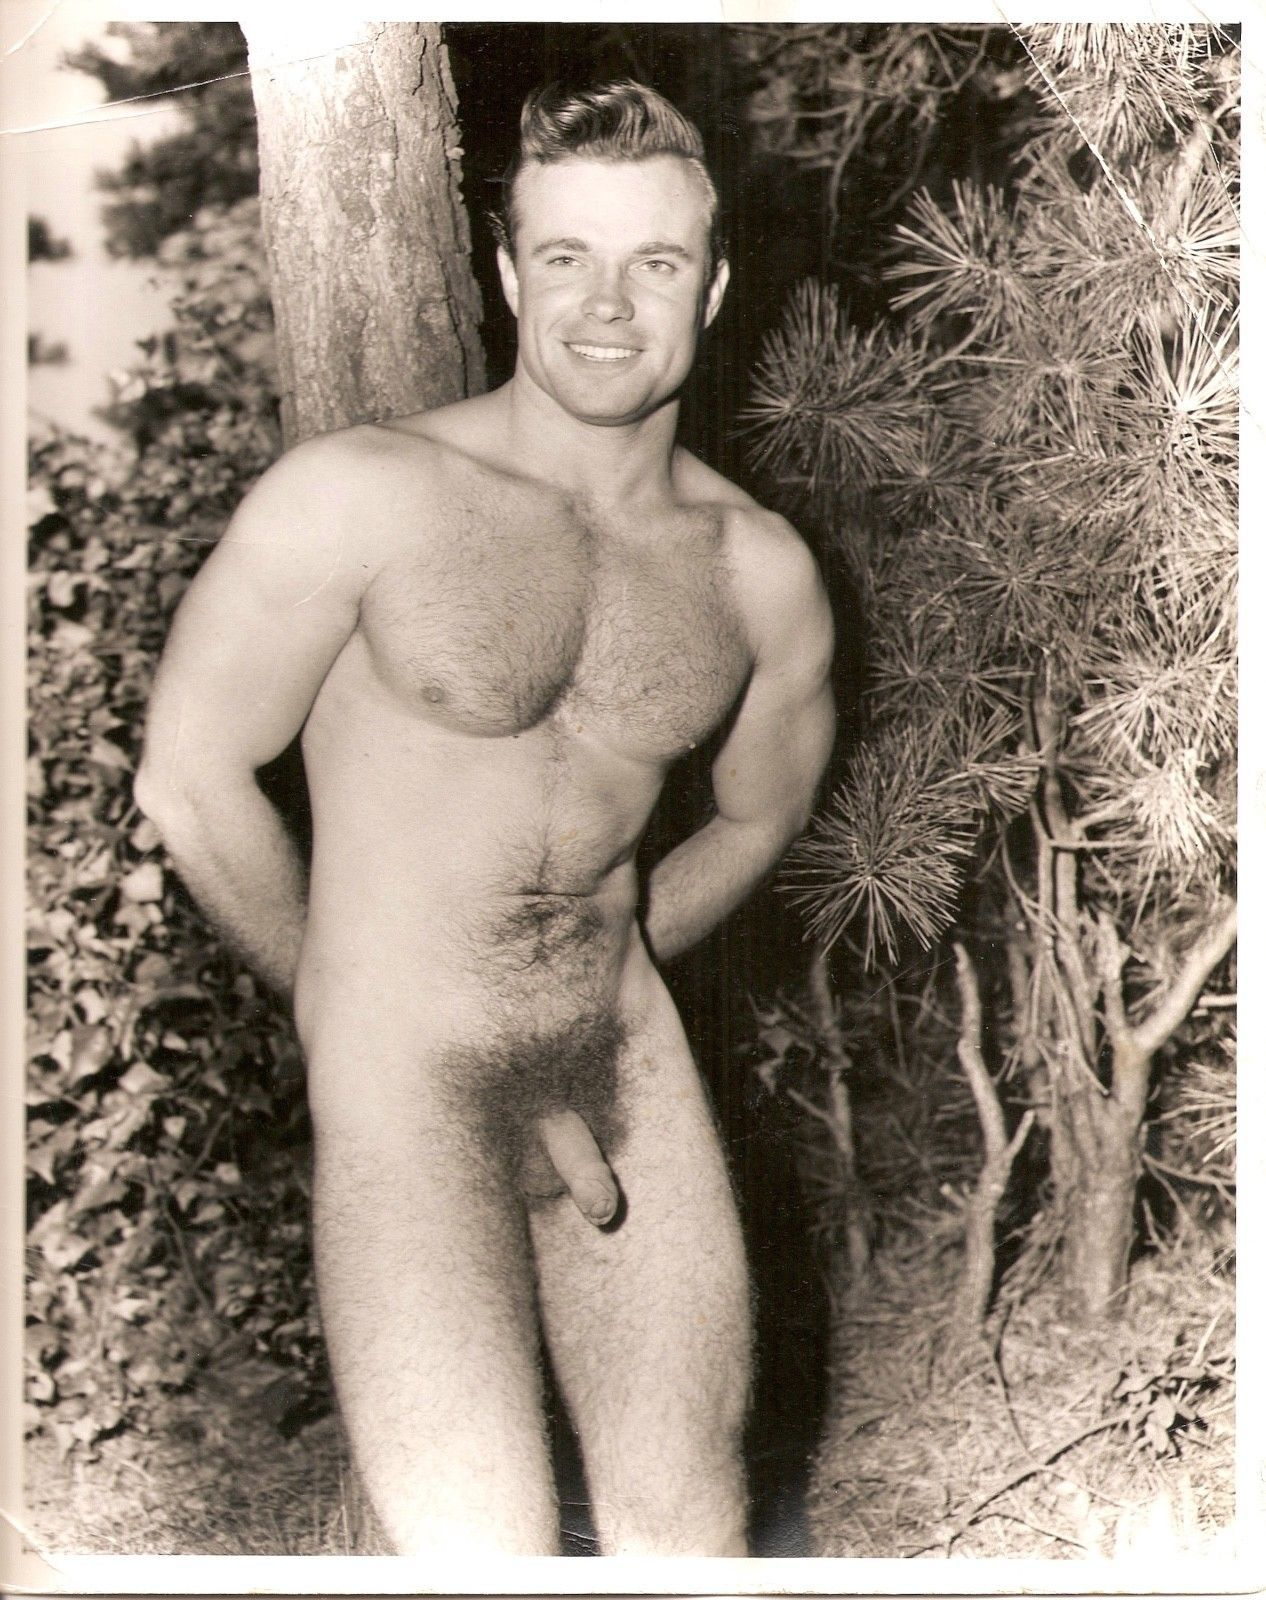 Male physique vintage erotica doug courtney apologise, but